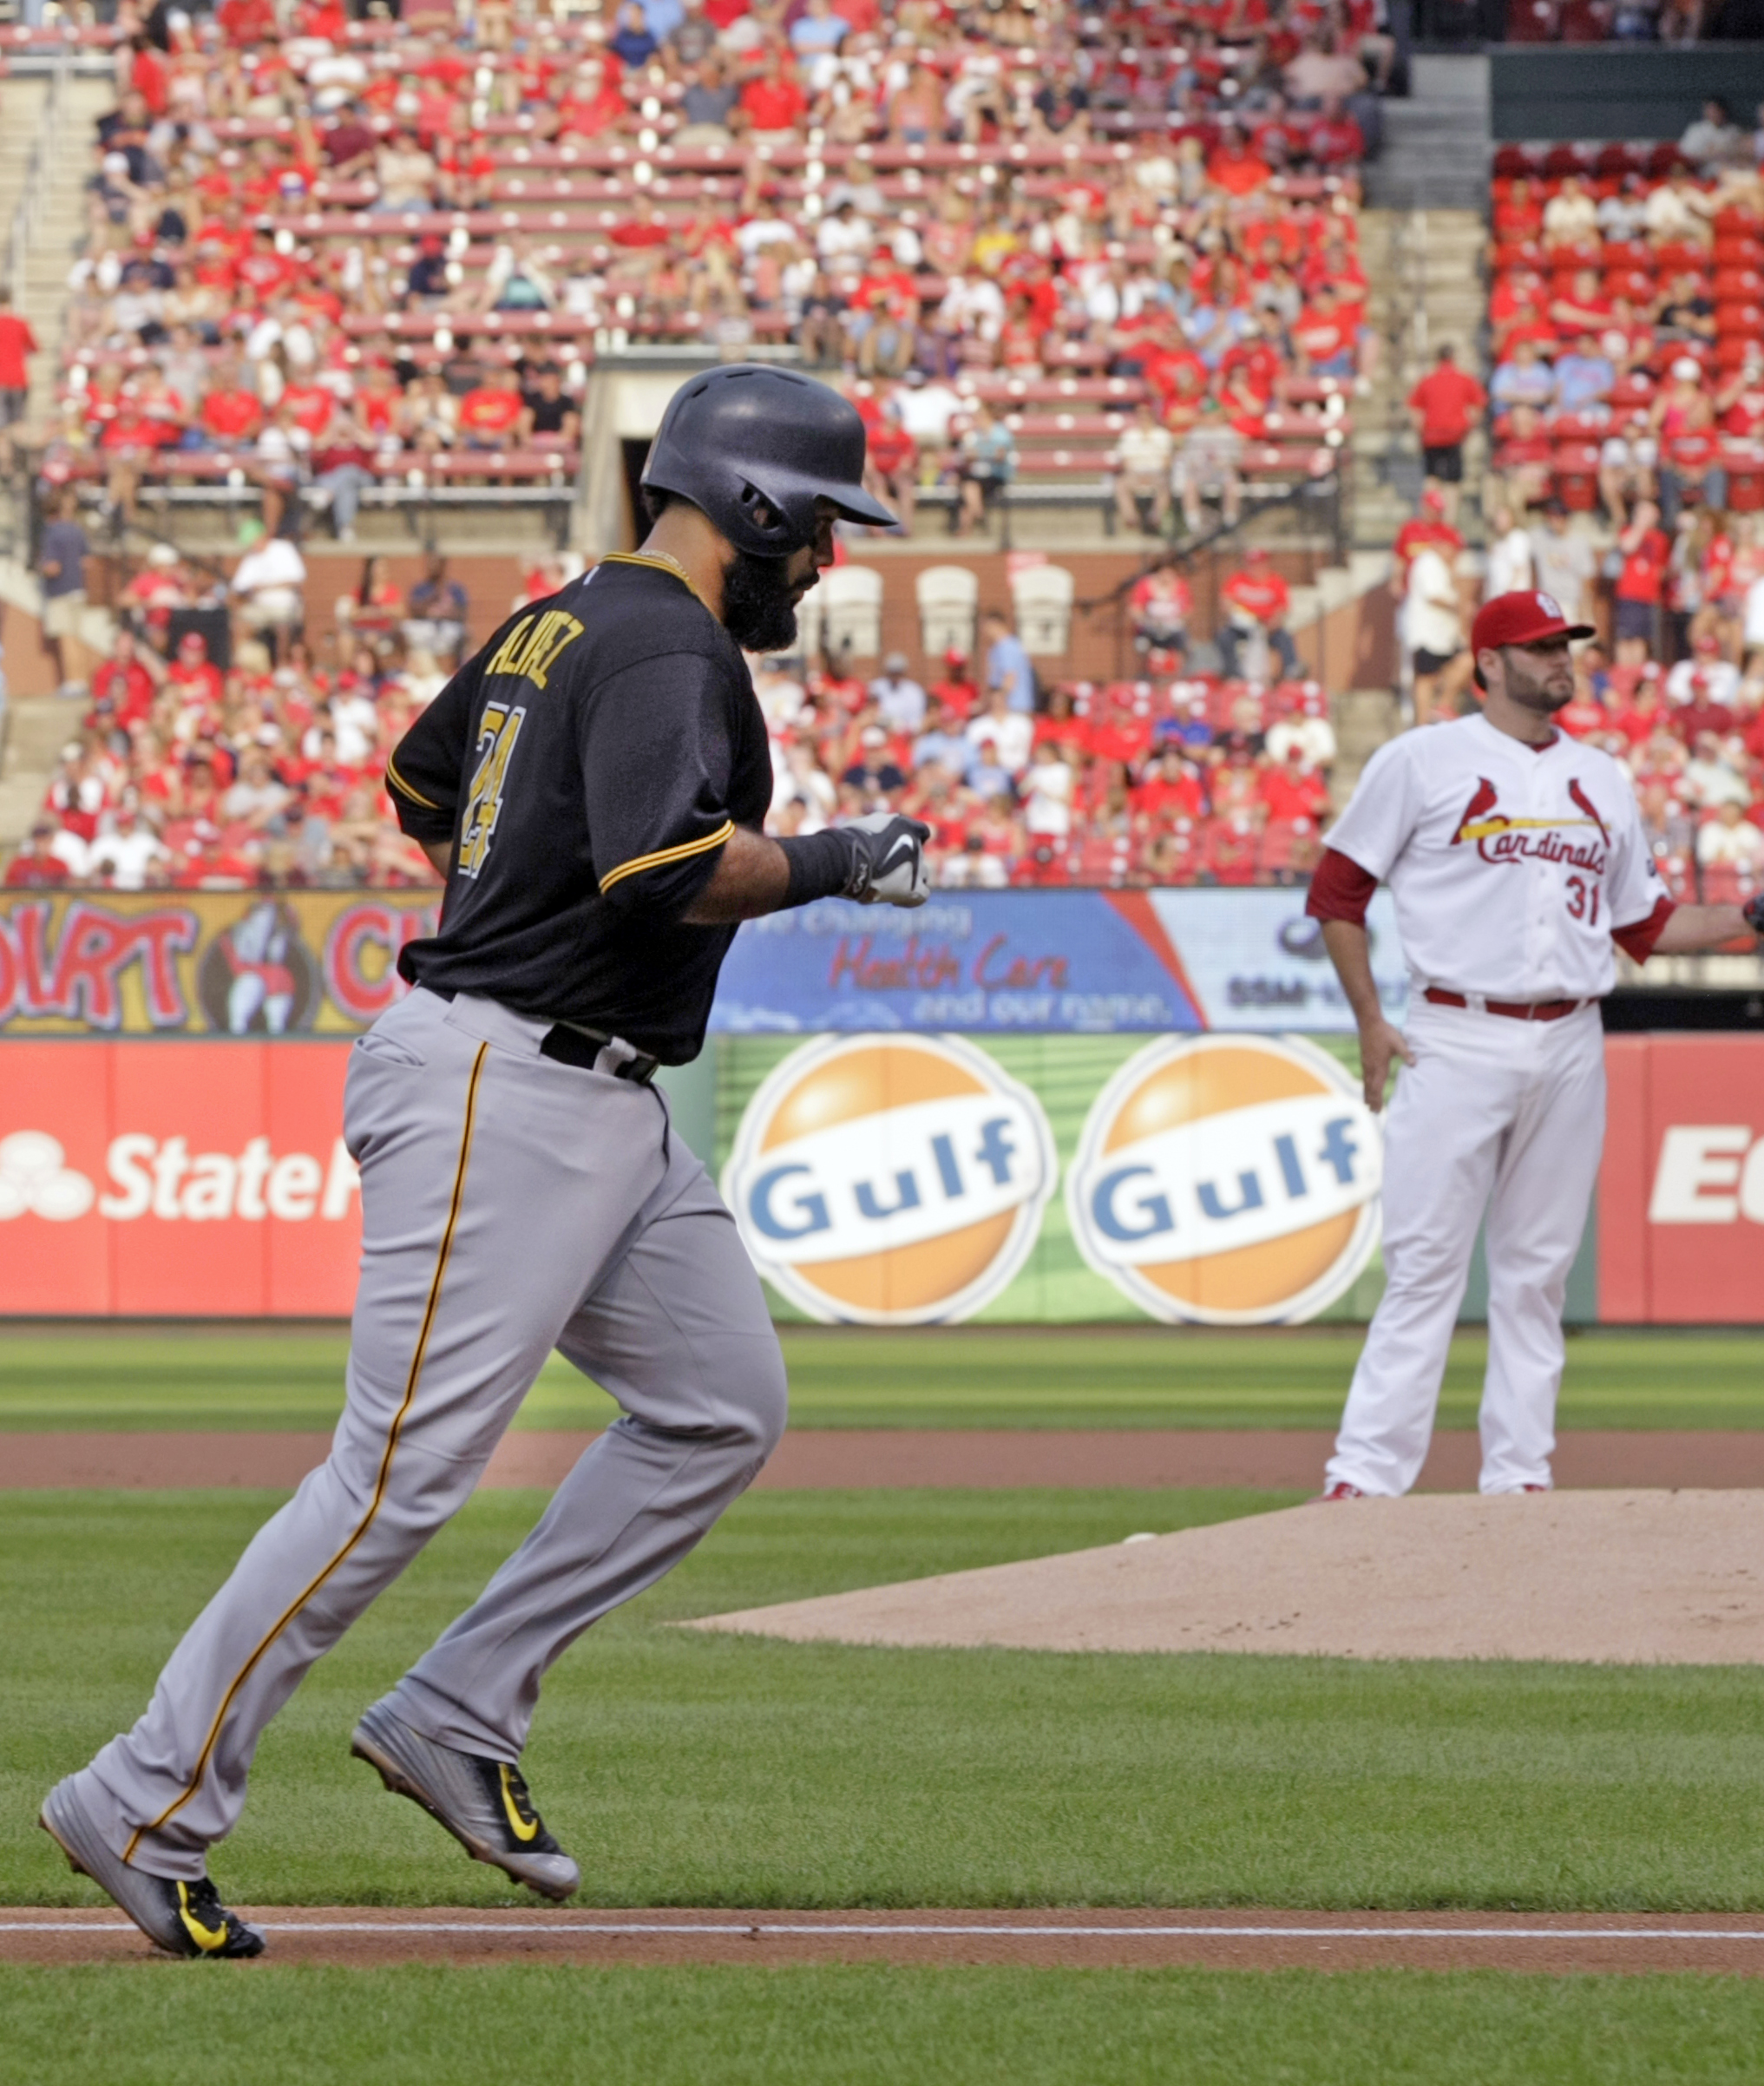 Pittsburgh Pirates' Pedro Alvarez, left, circles the bases as St. Louis Cardinals starting pitcher Lance Lynn looks on, after Alvarez hit a two-run home run in the first inning of a baseball game, Thursday, Aug. 13, 2015, in St. Louis. (AP Photo/Tom Ganna